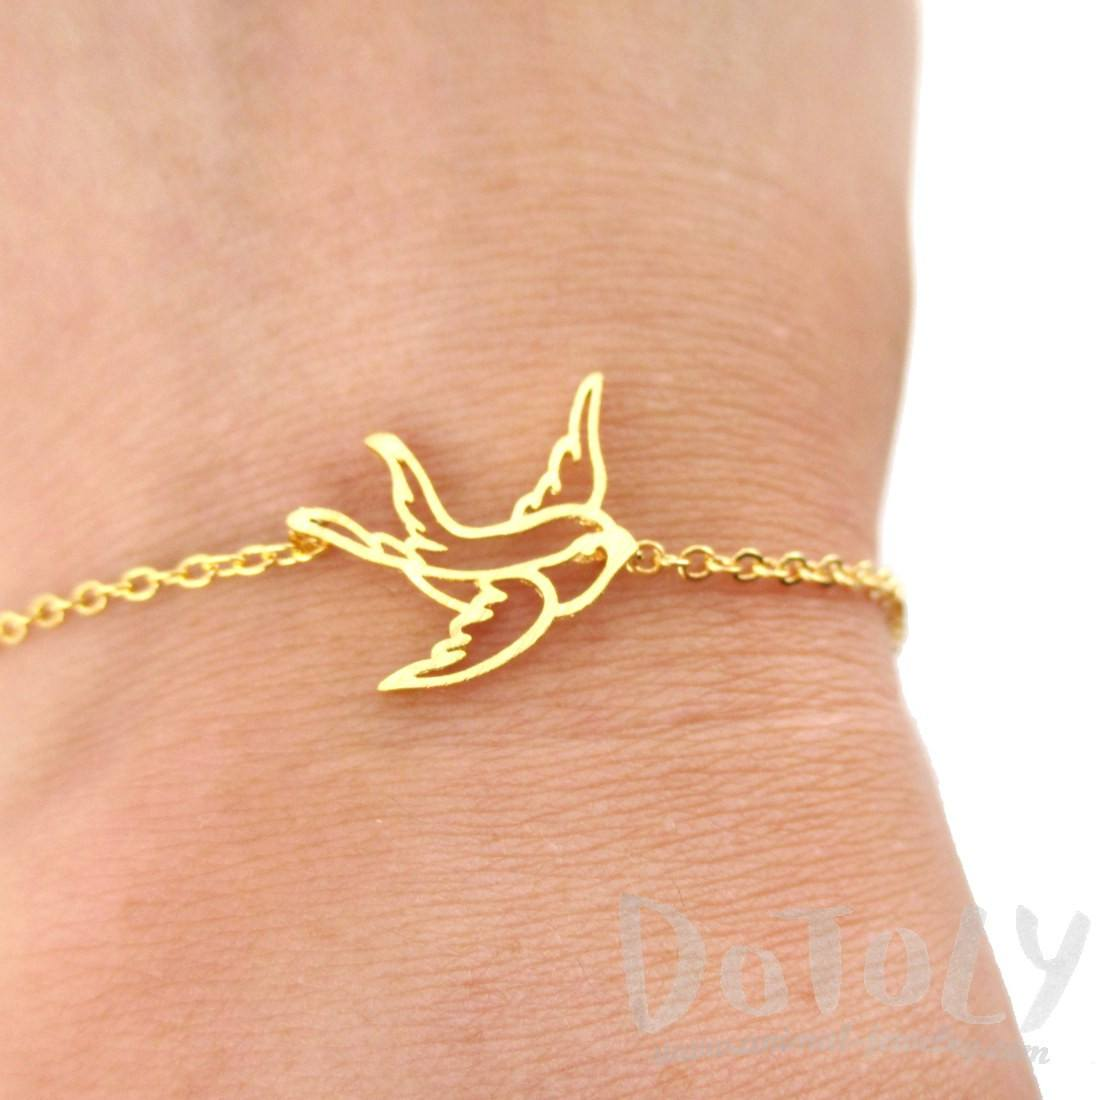 Swallow Bird Outline Shaped Charm Bracelet in Gold | Animal Jewelry